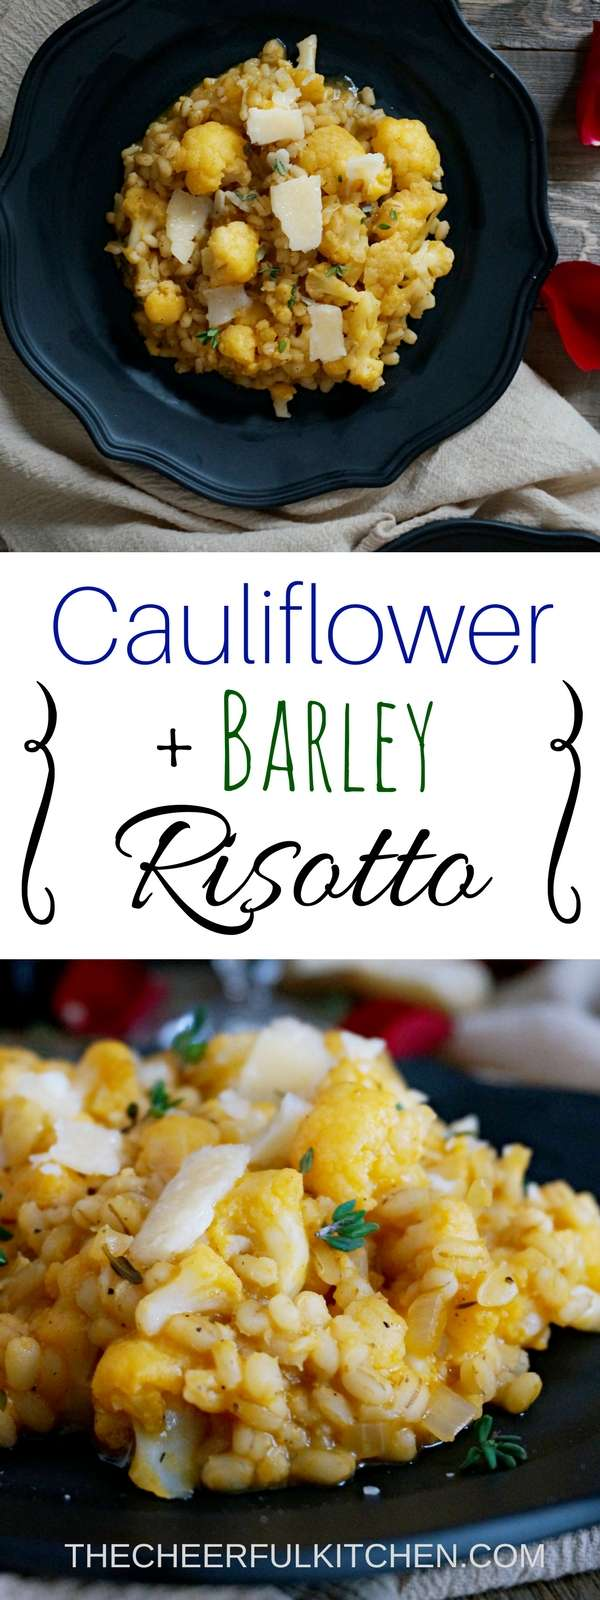 Cauliflower & Barley Risotto is creamy and delicious, and perfect for a date night in! With Voveti prosecco and shaved parmesan, it's an indulgent vegetarian dinner. Get the recipe now at The Cheerful Kitchen!